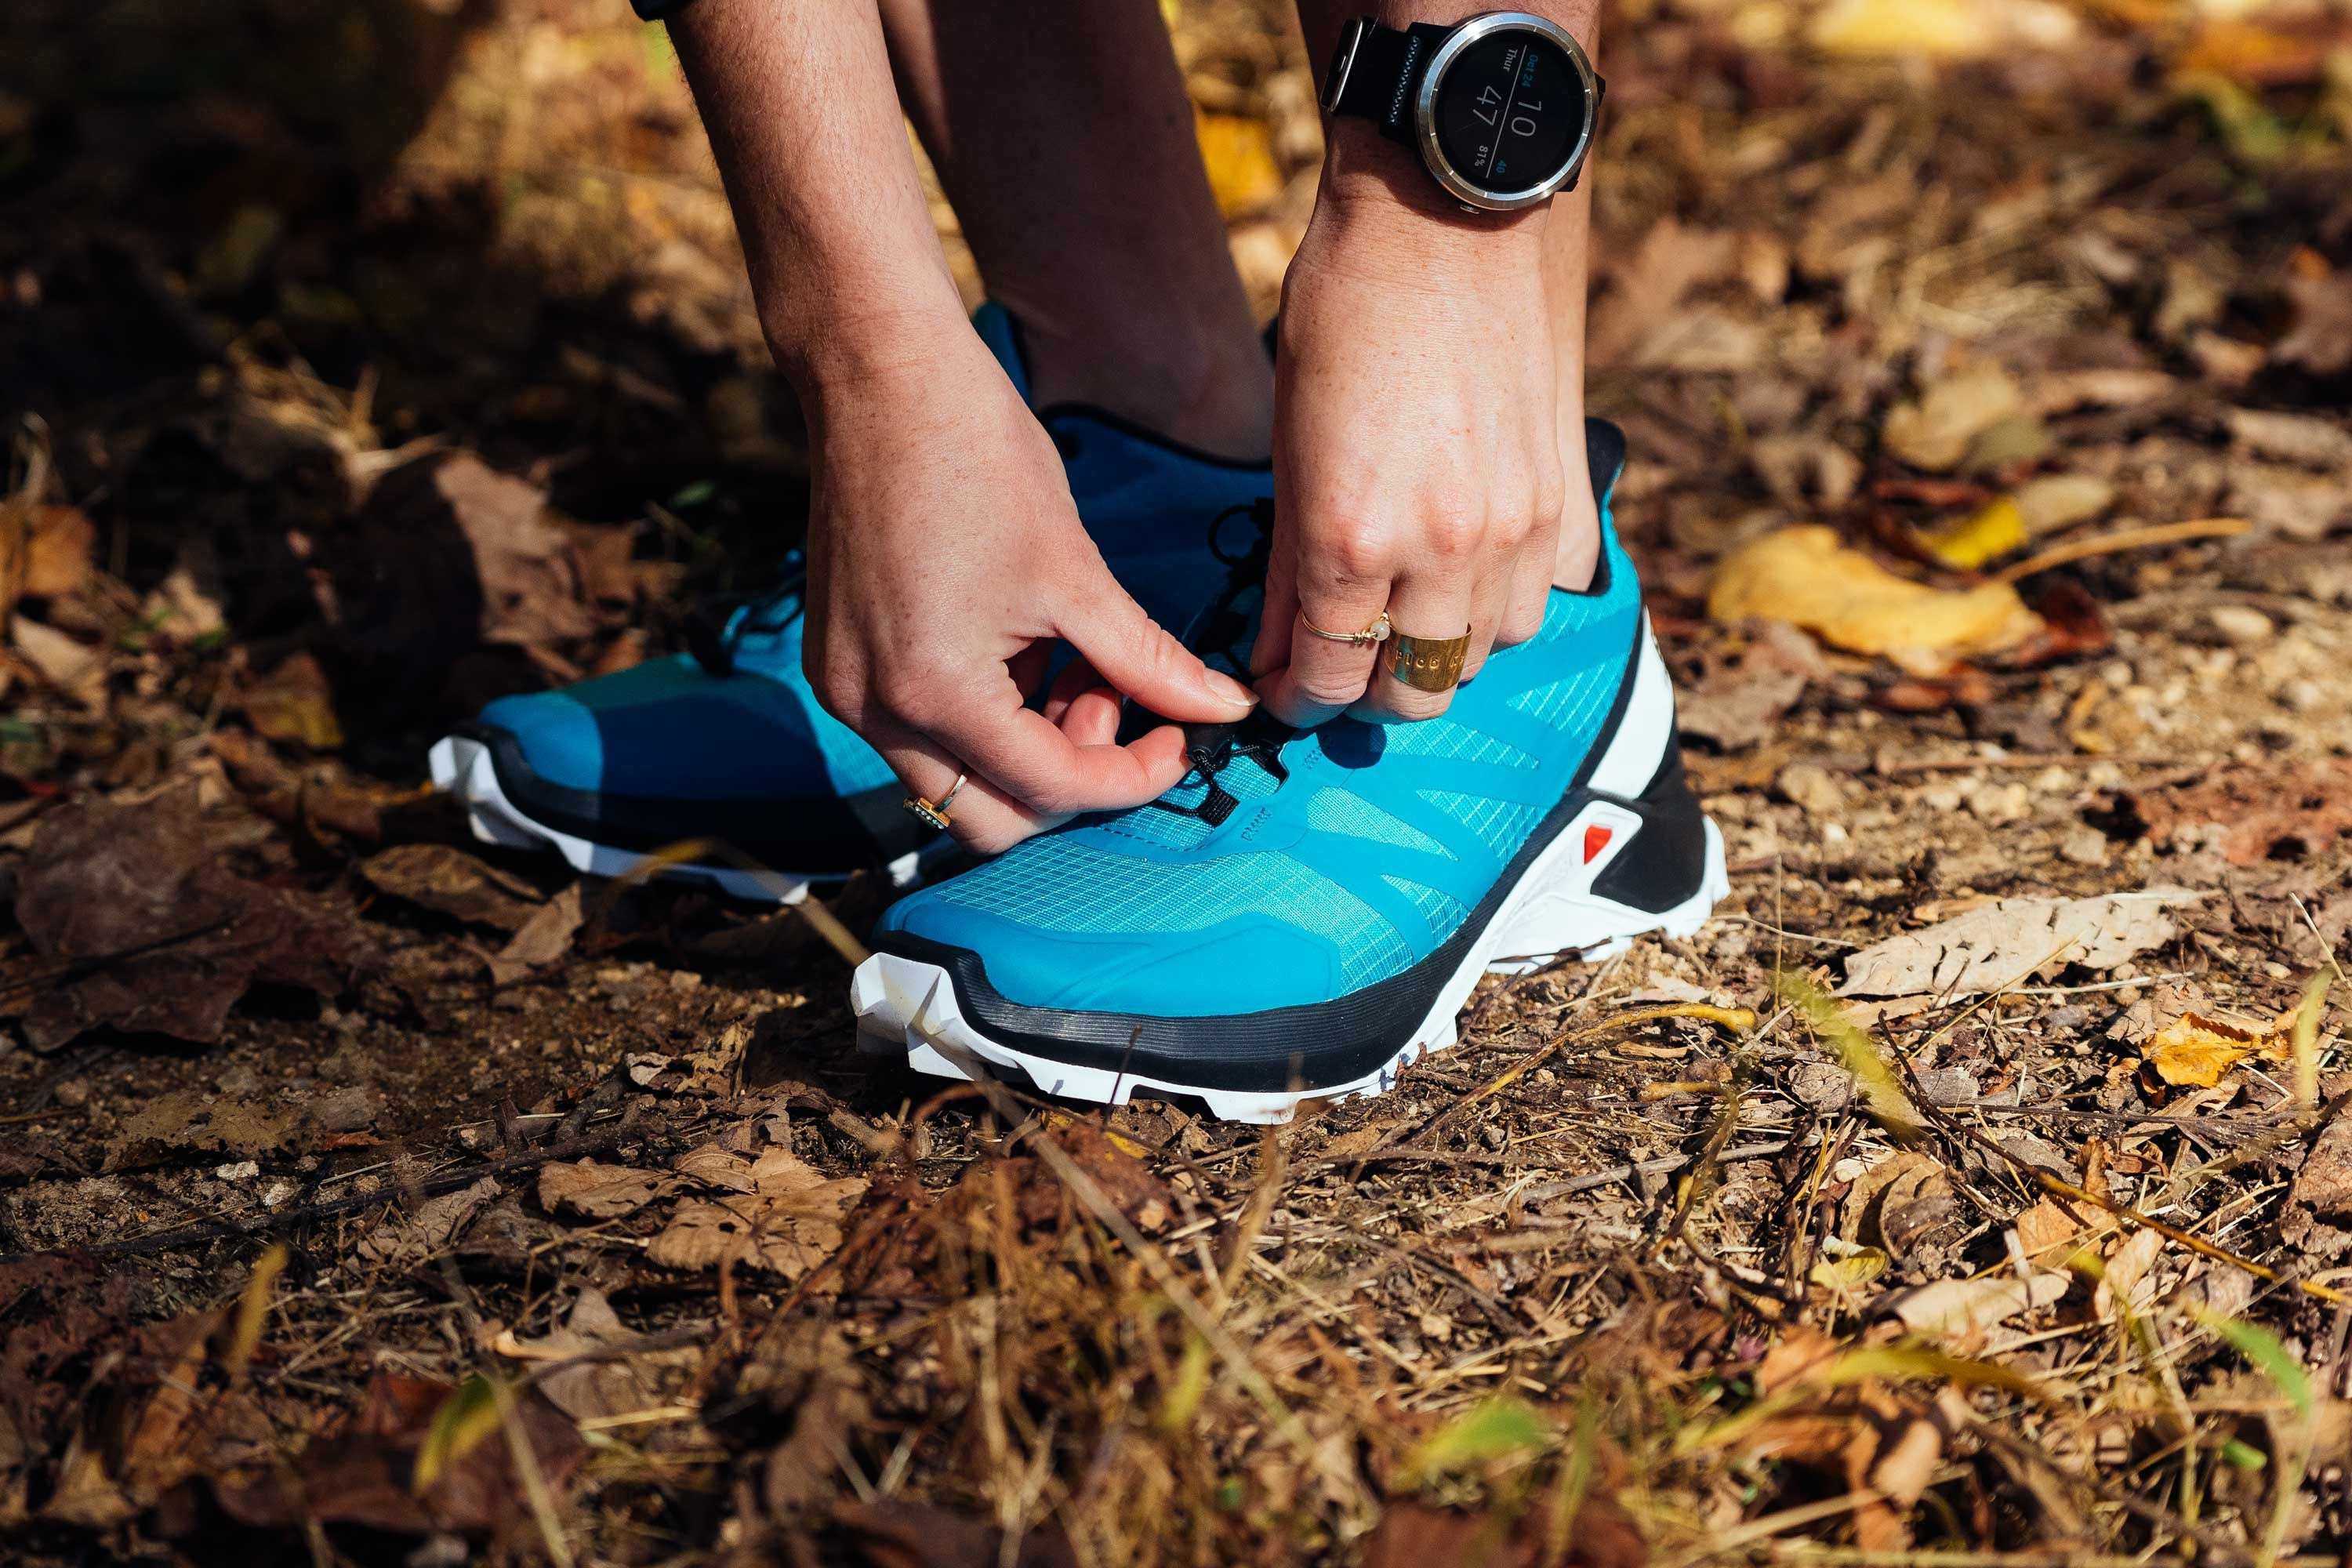 How Should Running Shoes Fit? - Running